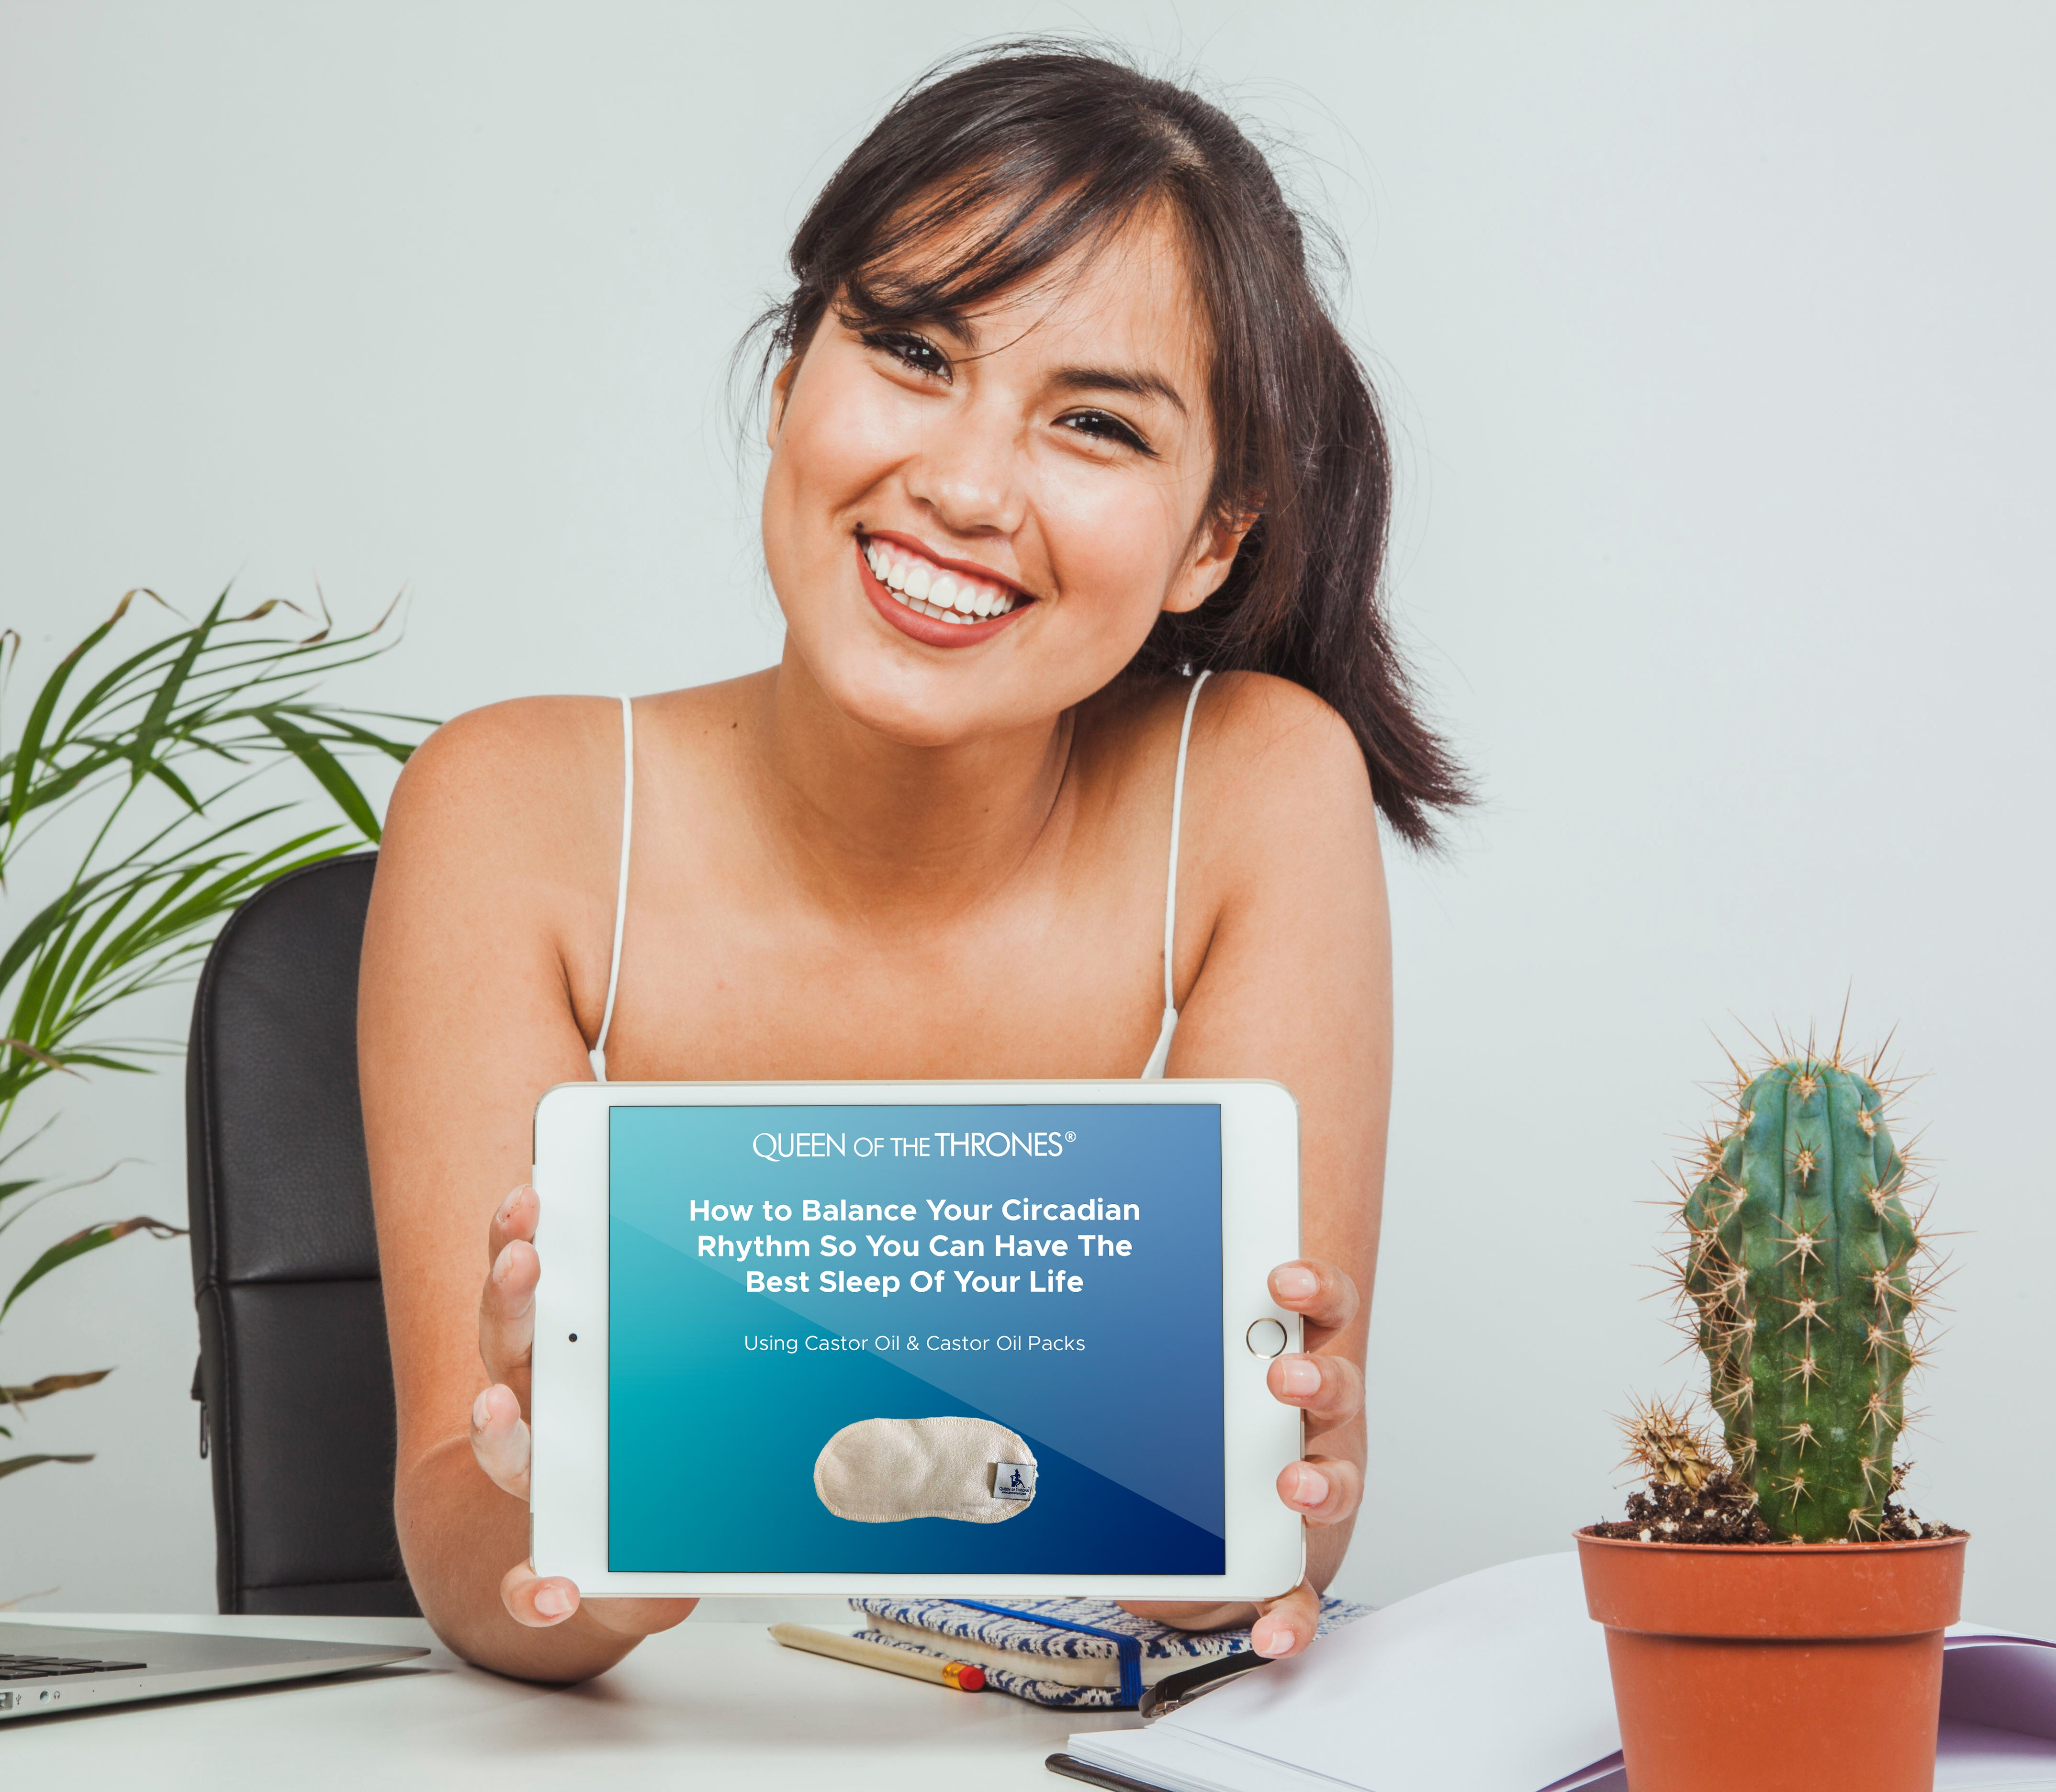 Smiling woman with Ipad displaying How to Balance Your Circadian Rhythm So You Can Have The Best Sleep Of Your Life